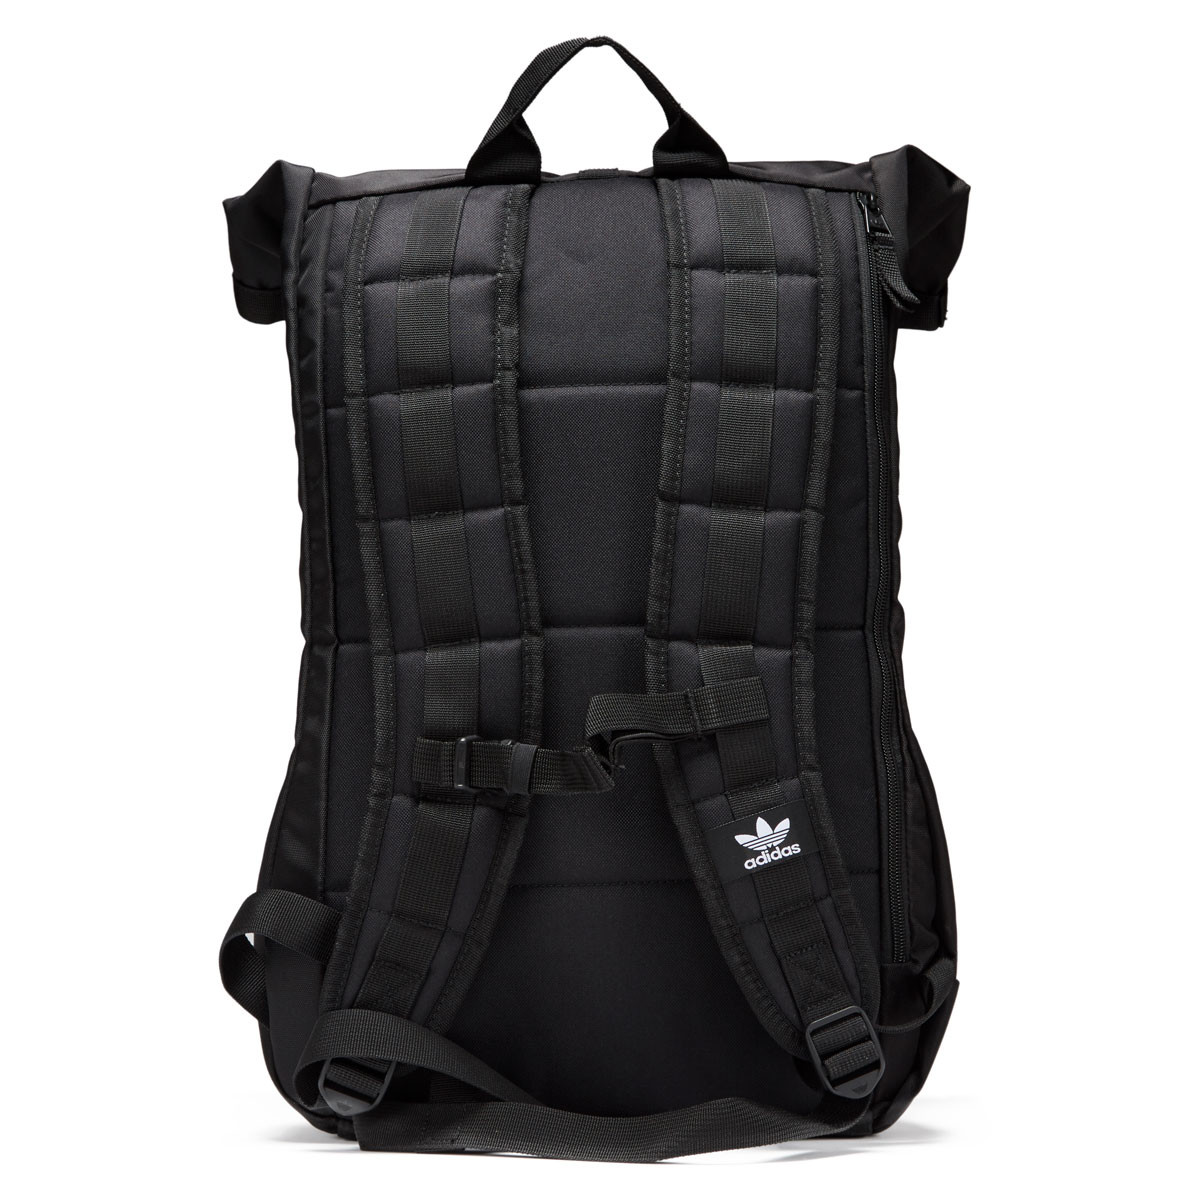 Adidas Backpack With Swiss Cooler Pocket Paralympic MVpSUqGz